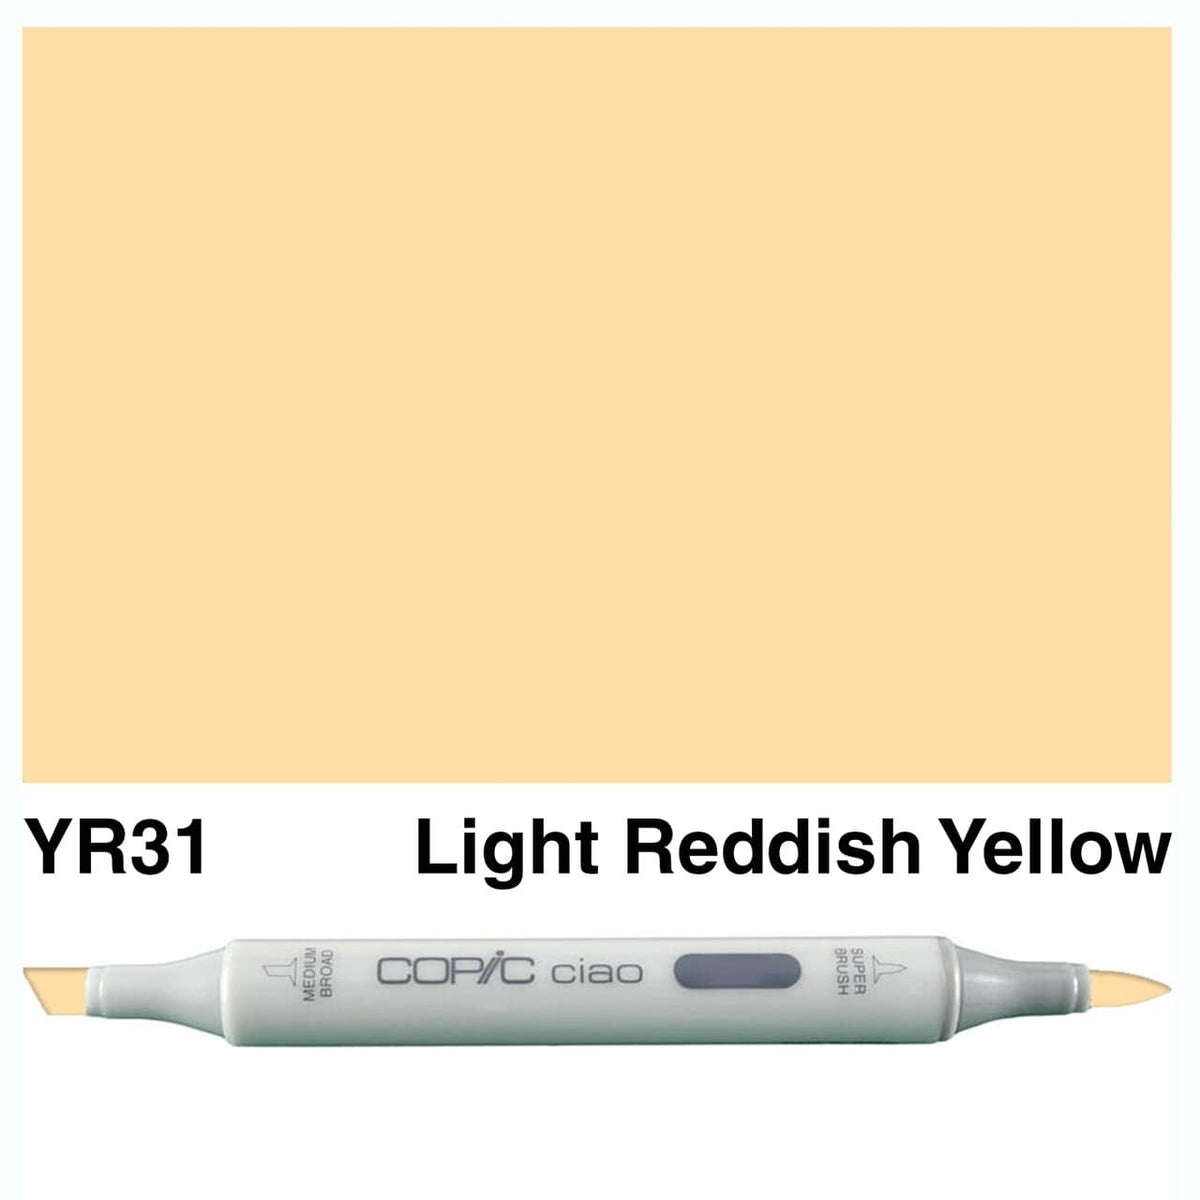 Copic Ciao YR31 lightreddish yellow